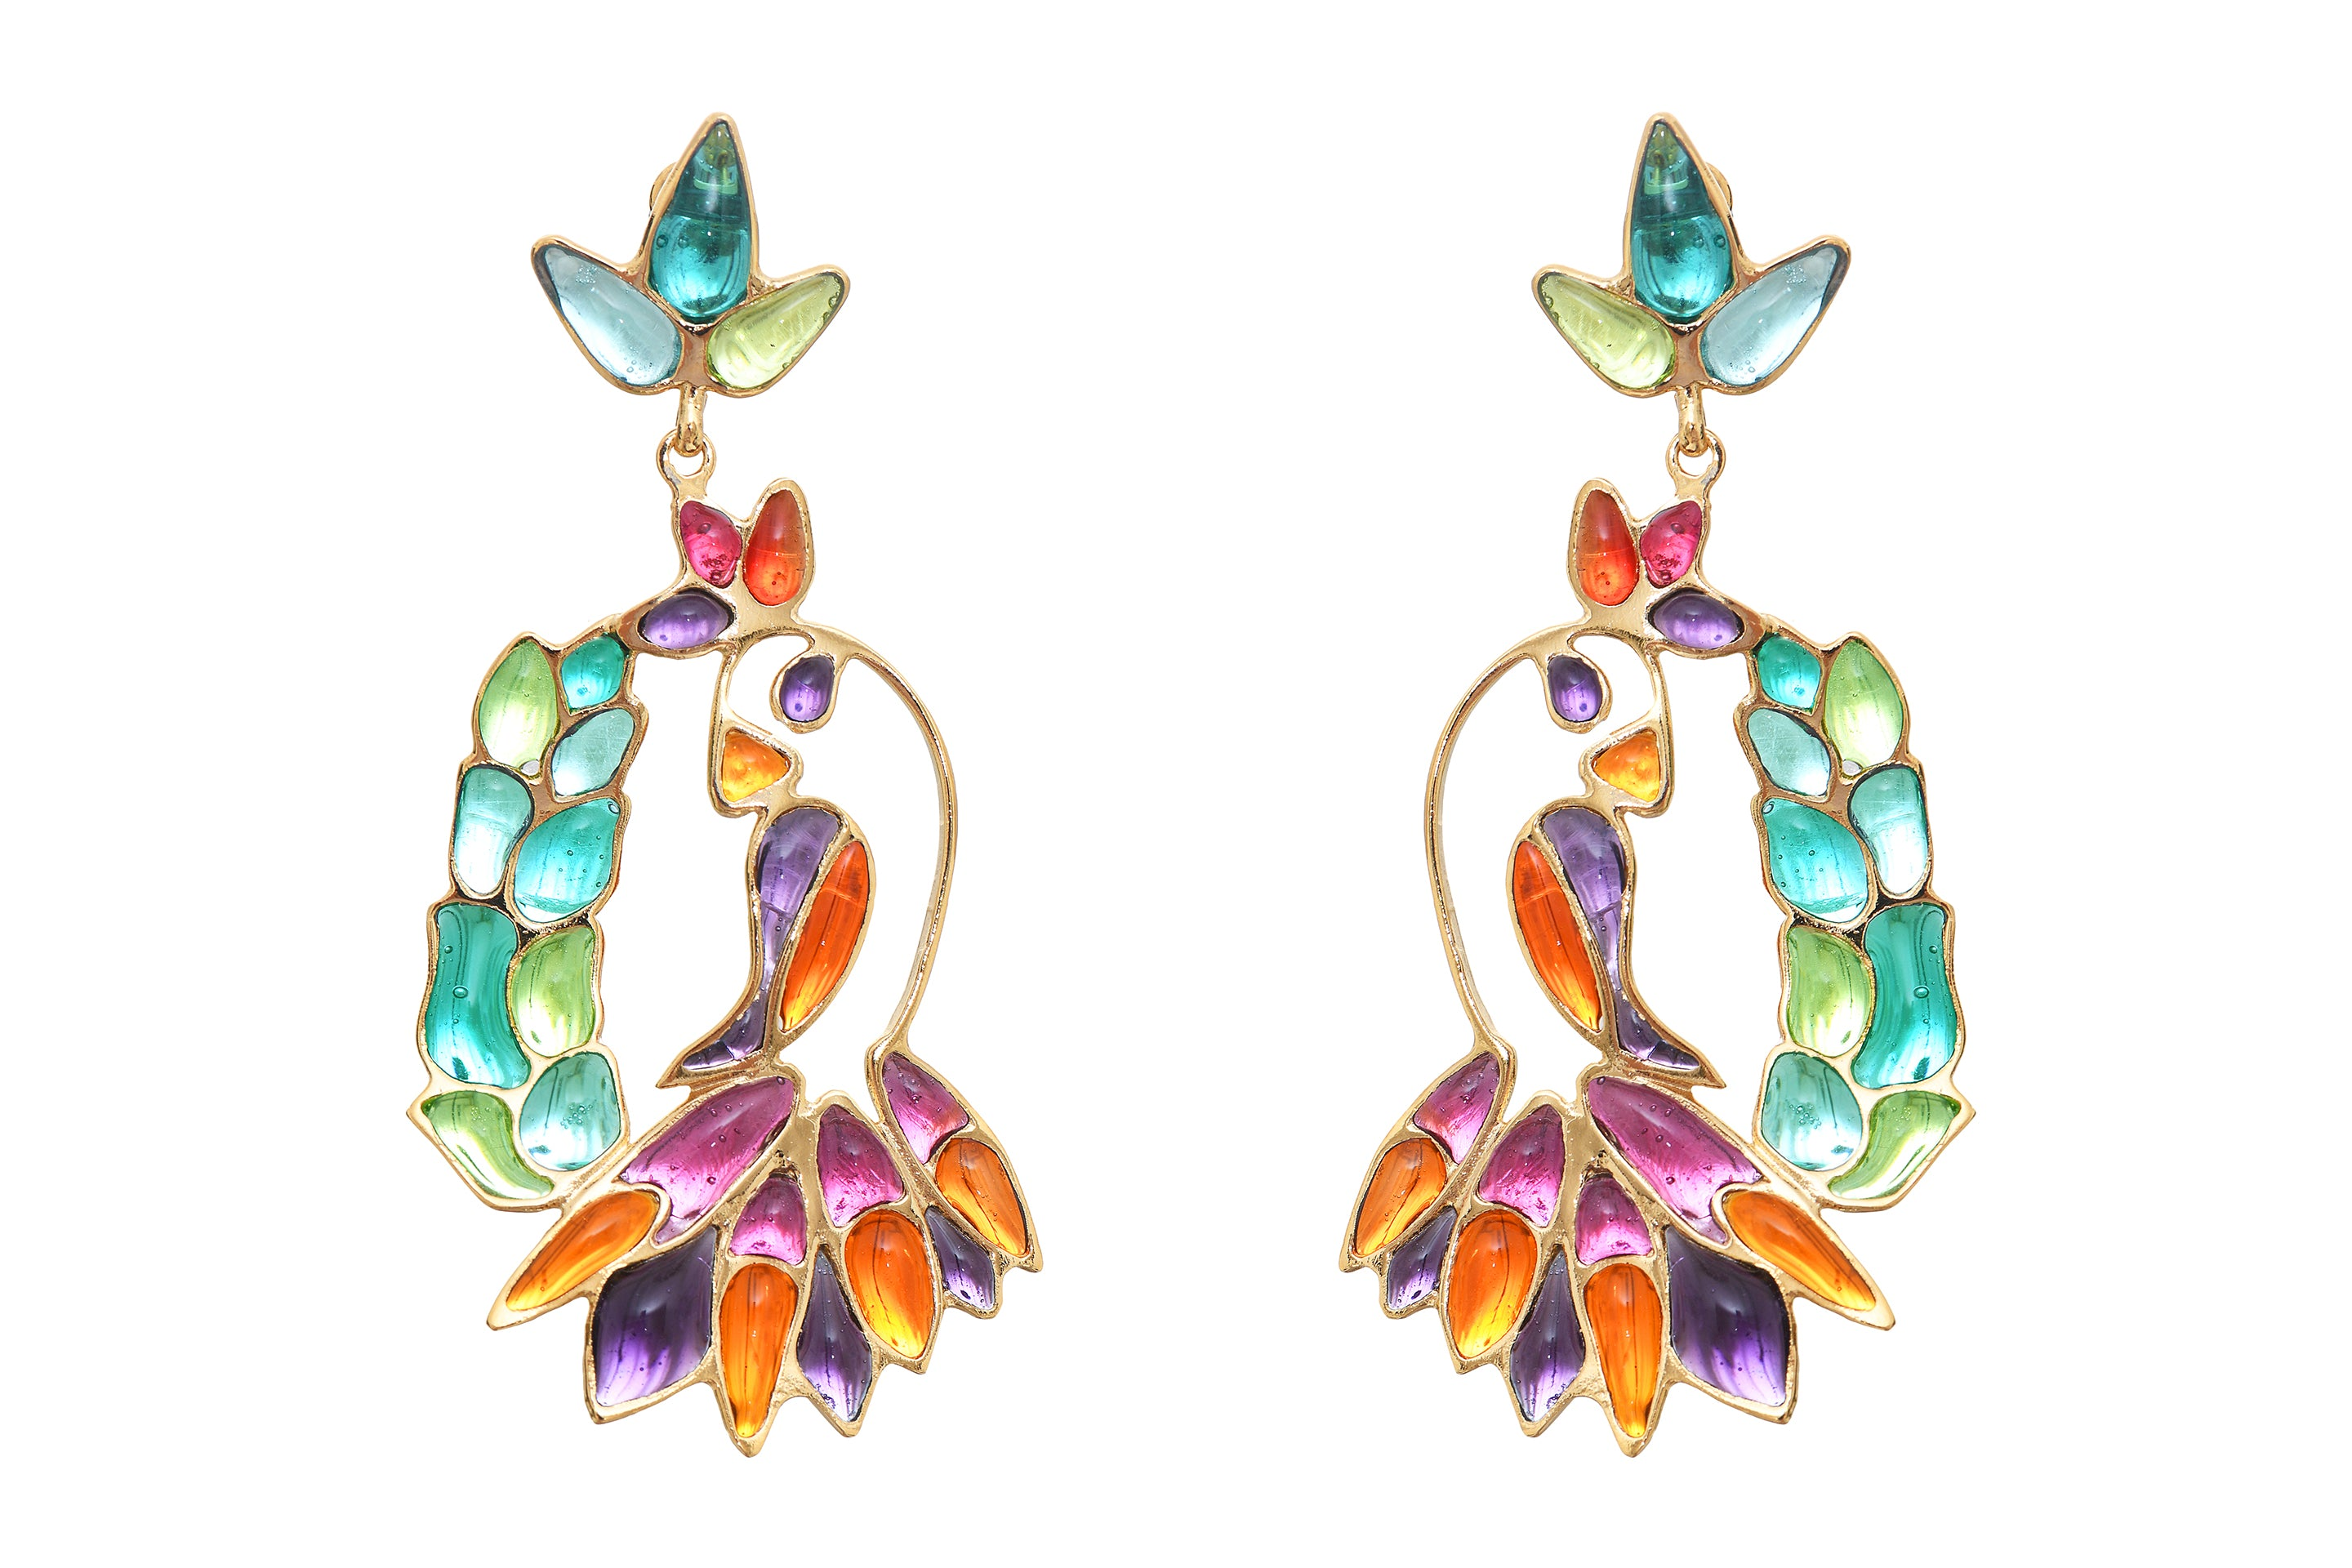 Hanging Tropical Bird Pierced Earrings